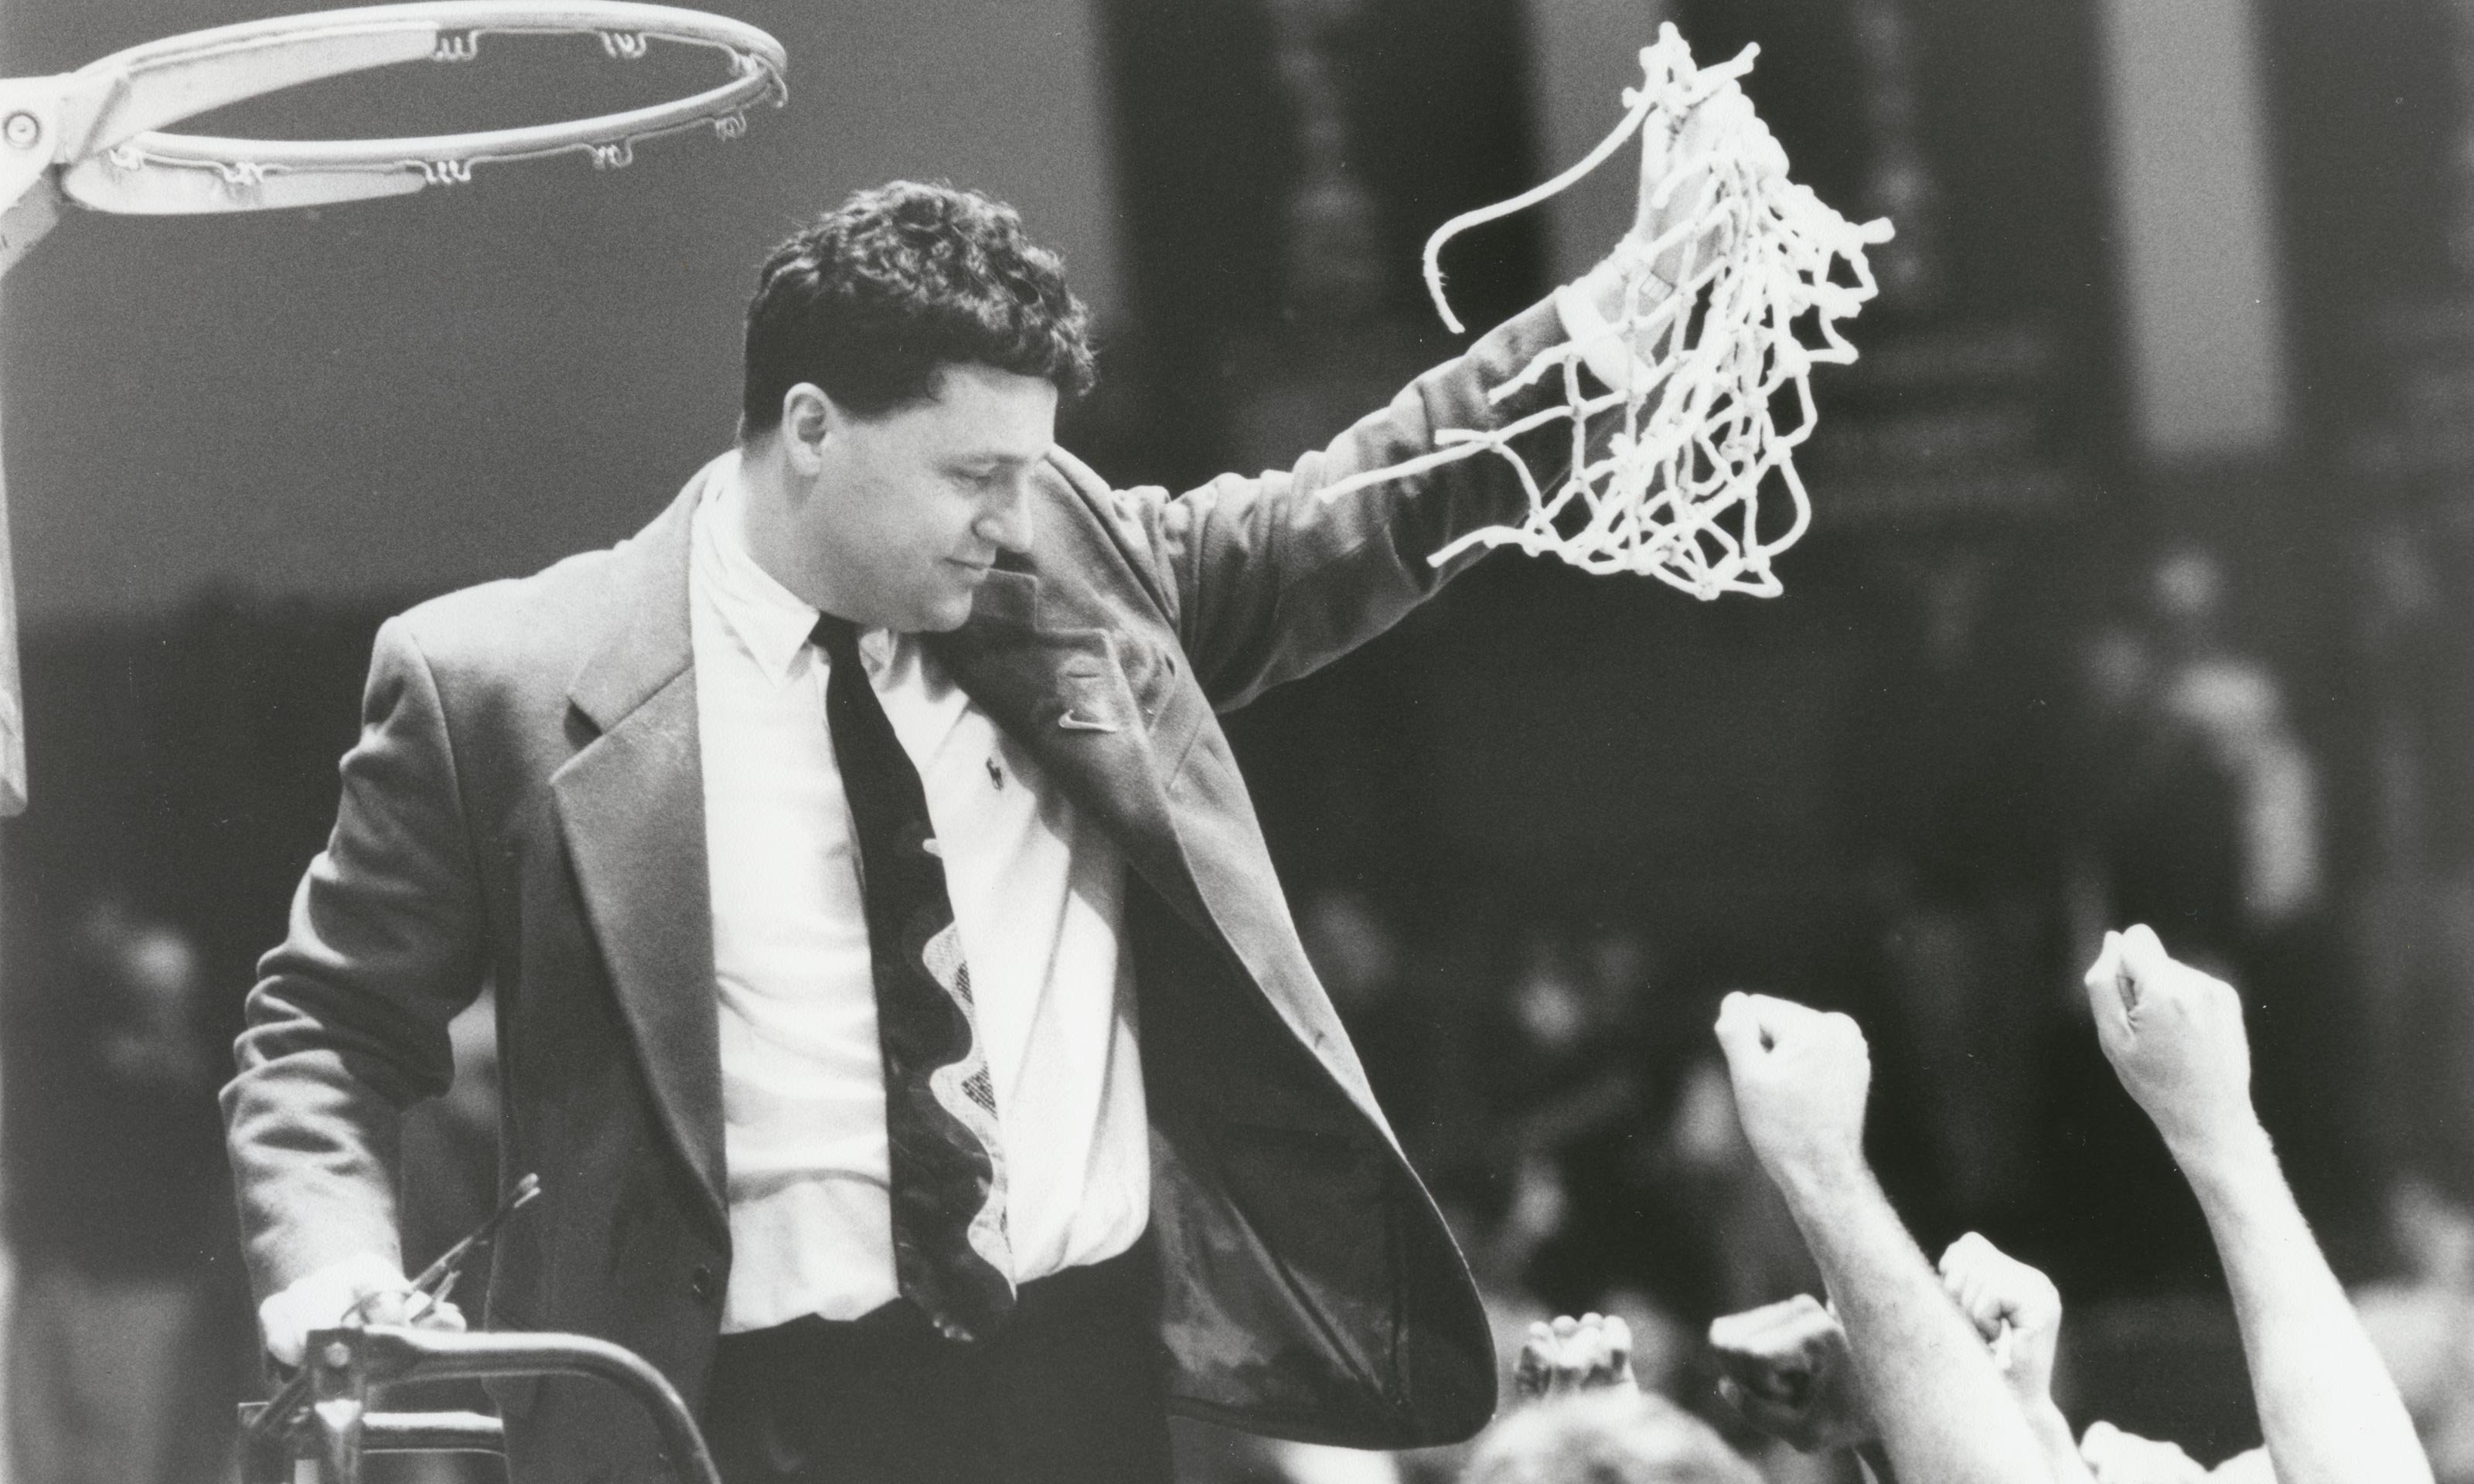 Greg Kampe in 1996 cuts down the basketball net after winning a share of the regular season GLIAC title.